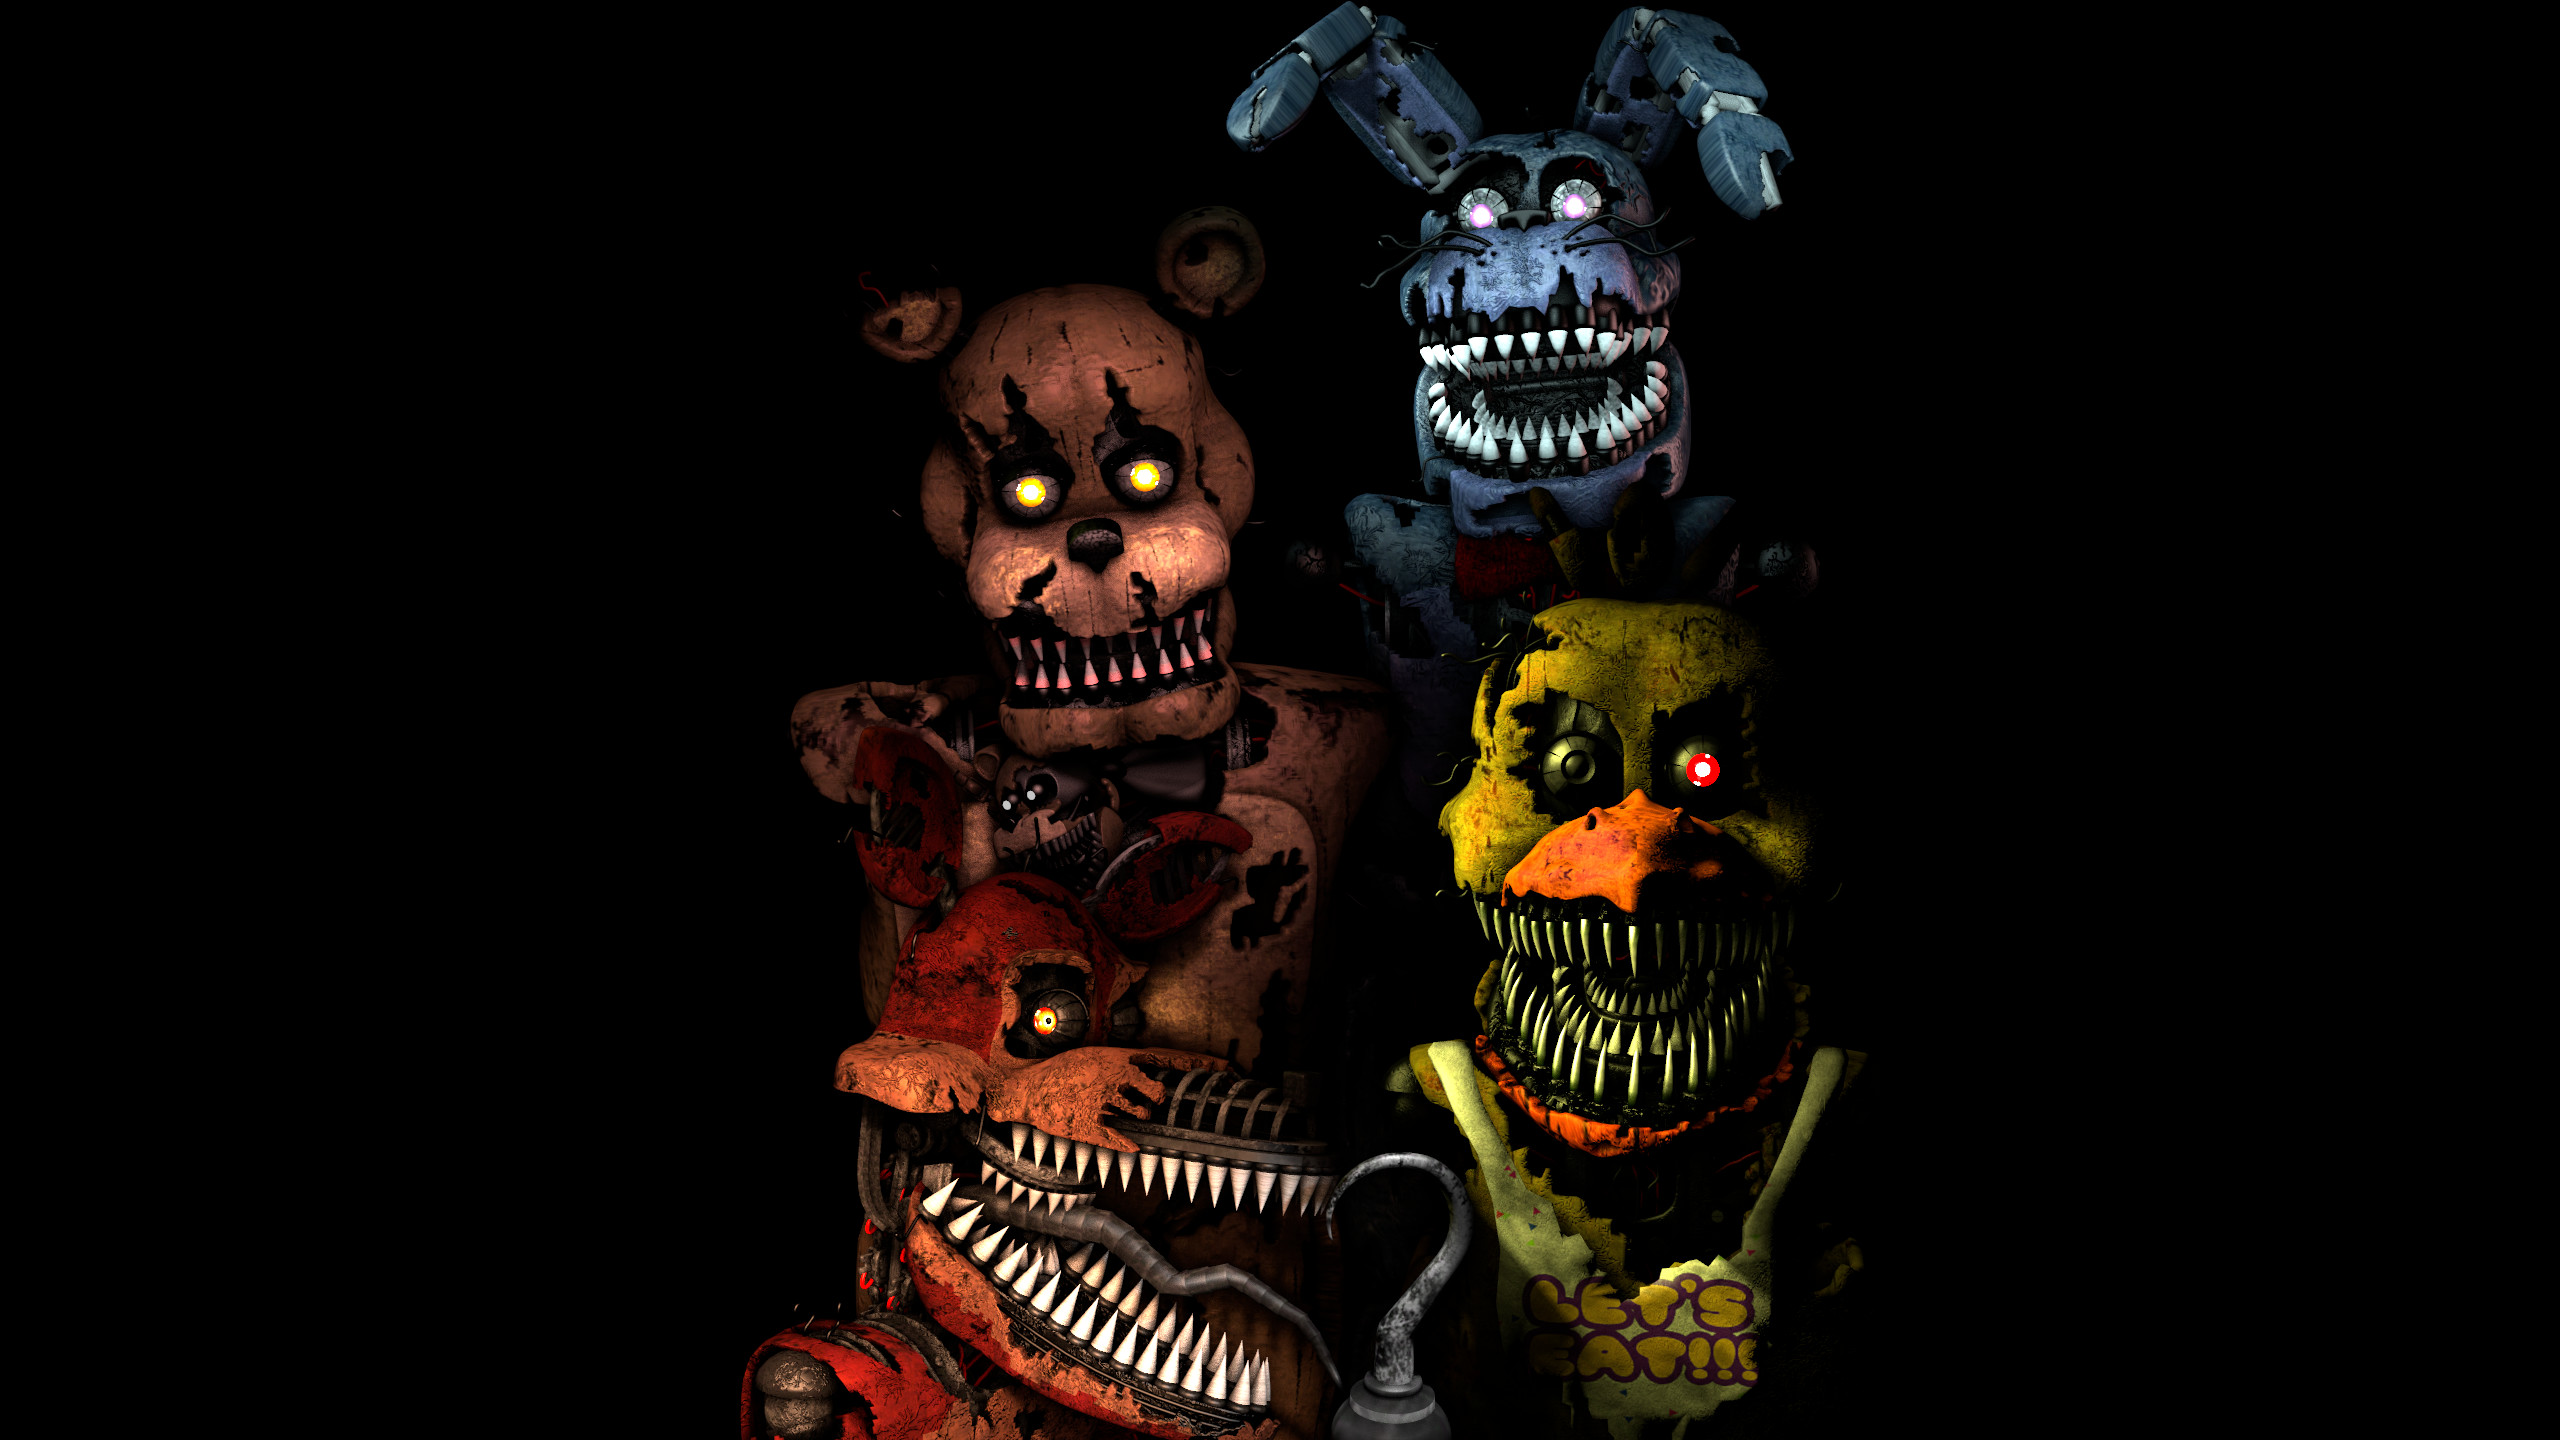 Five Nights at Freddys Wallpapers 80+ images